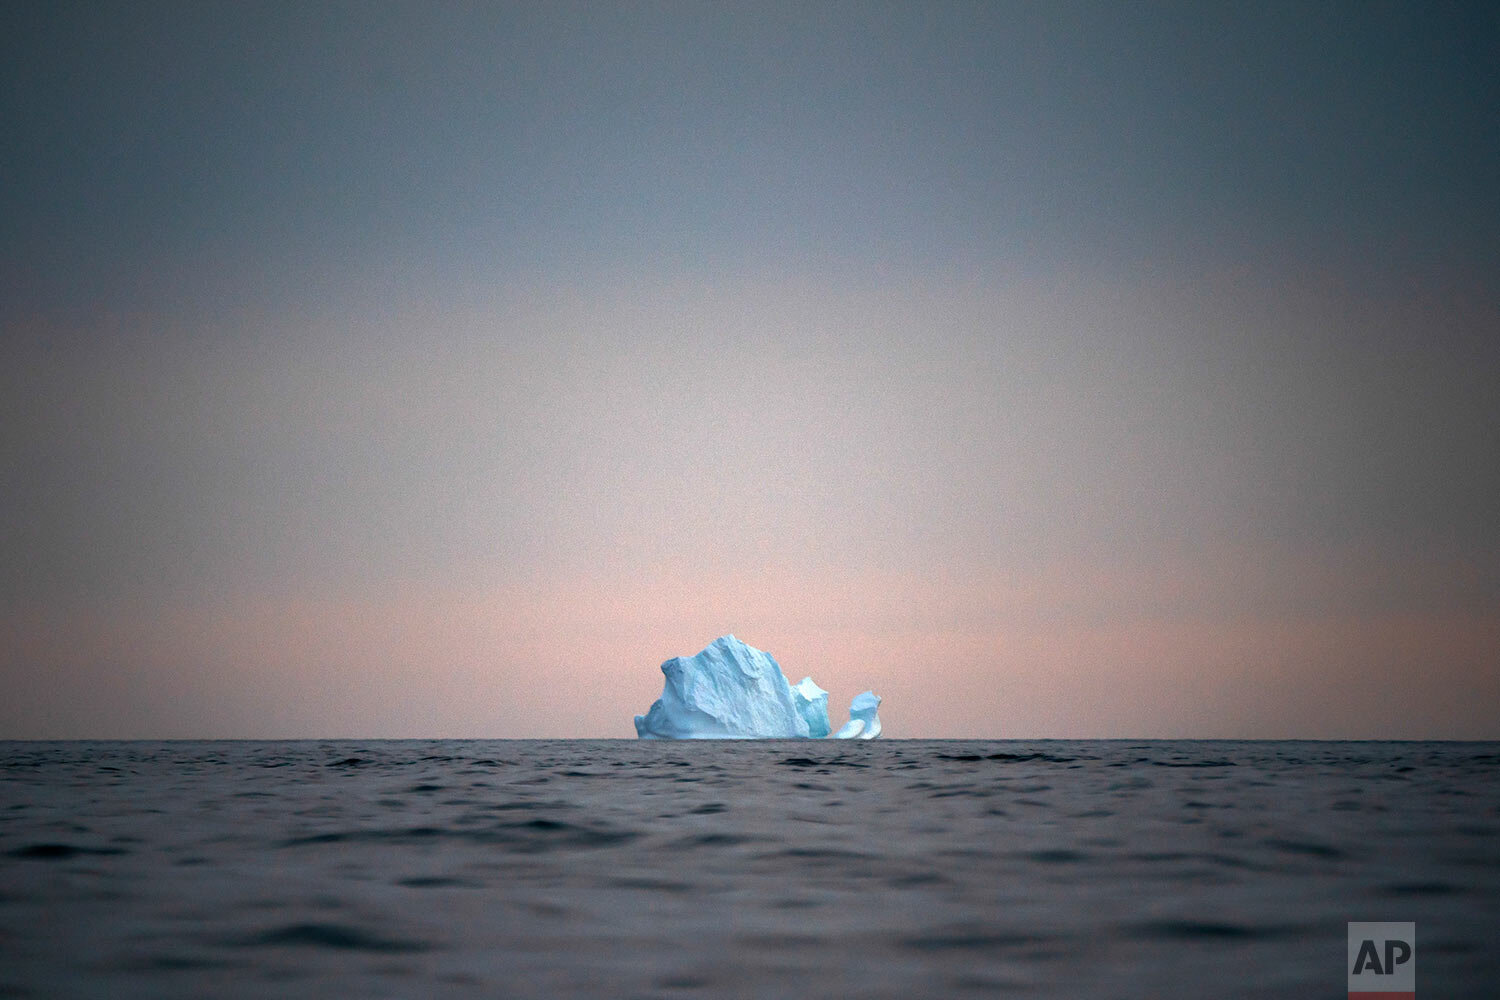 A large Iceberg floats away as the sun sets near Kulusuk, Greenland, on Aug. 15, 2019. (AP Photo/Felipe Dana)